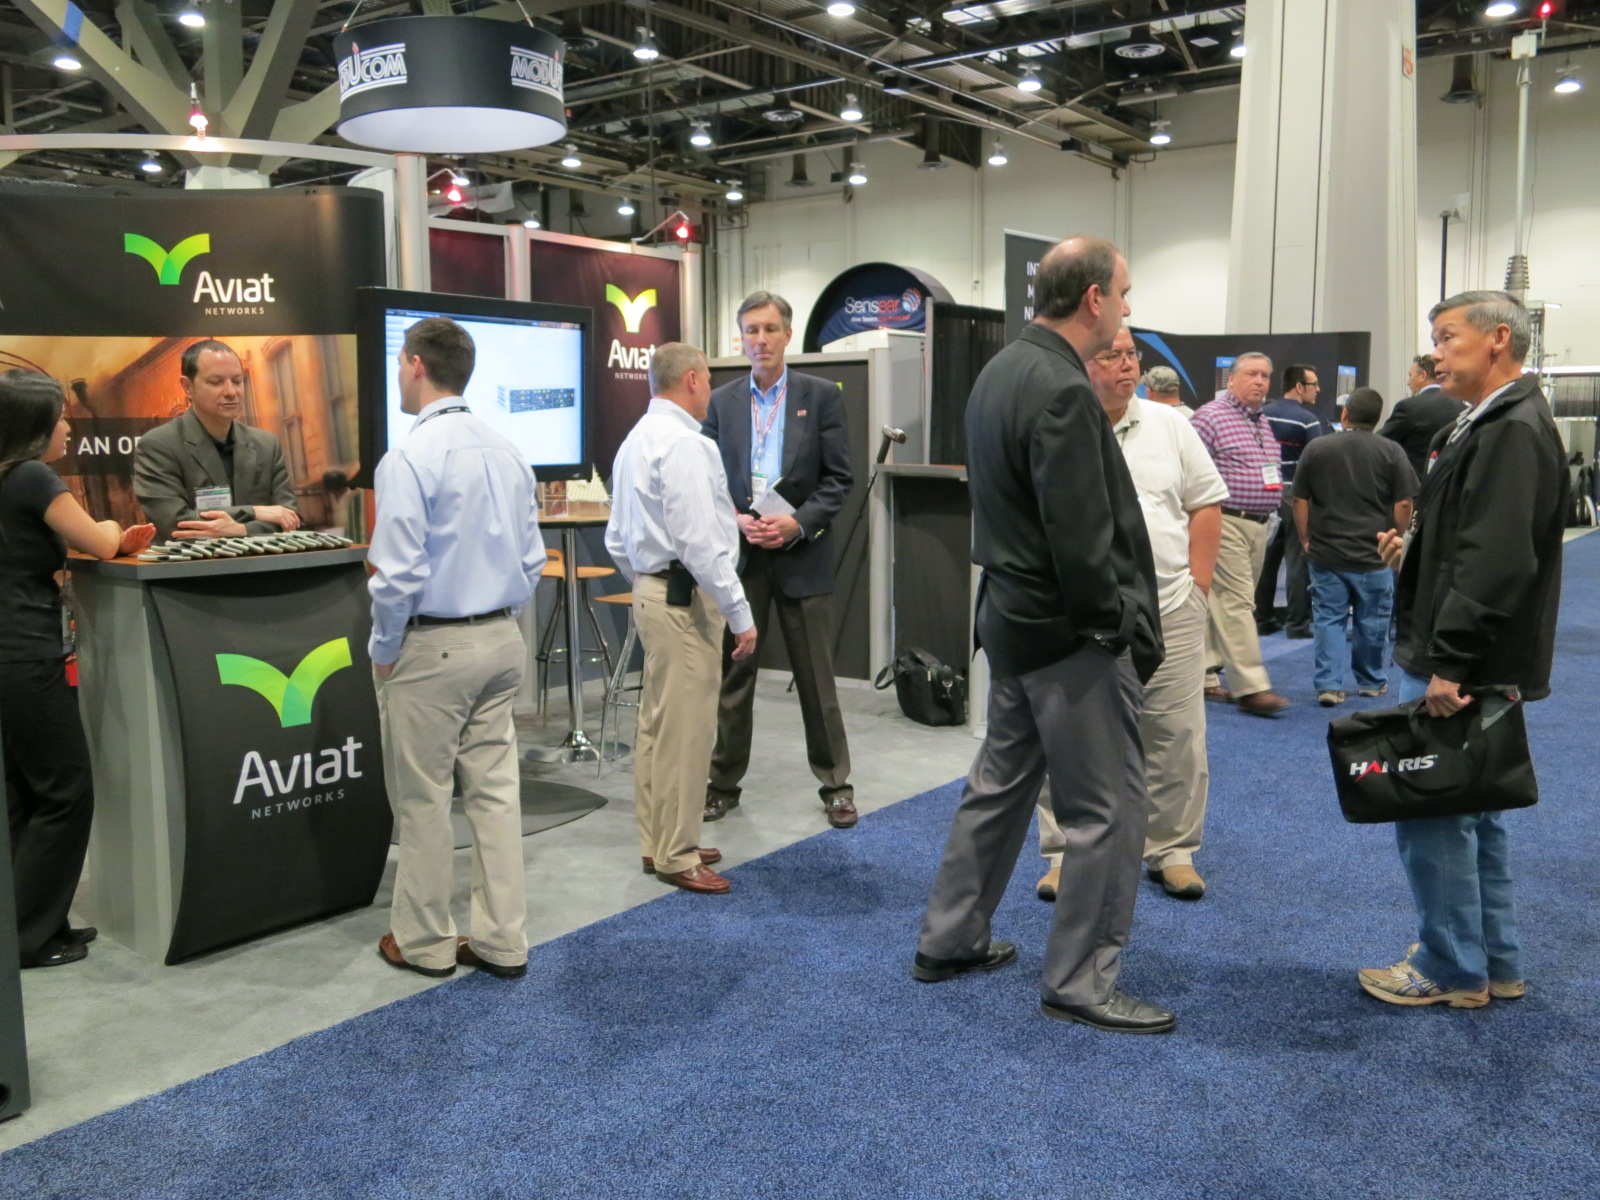 Aviat-at-IWCE-public-safety-LTE-broadband-microwave-backhaul